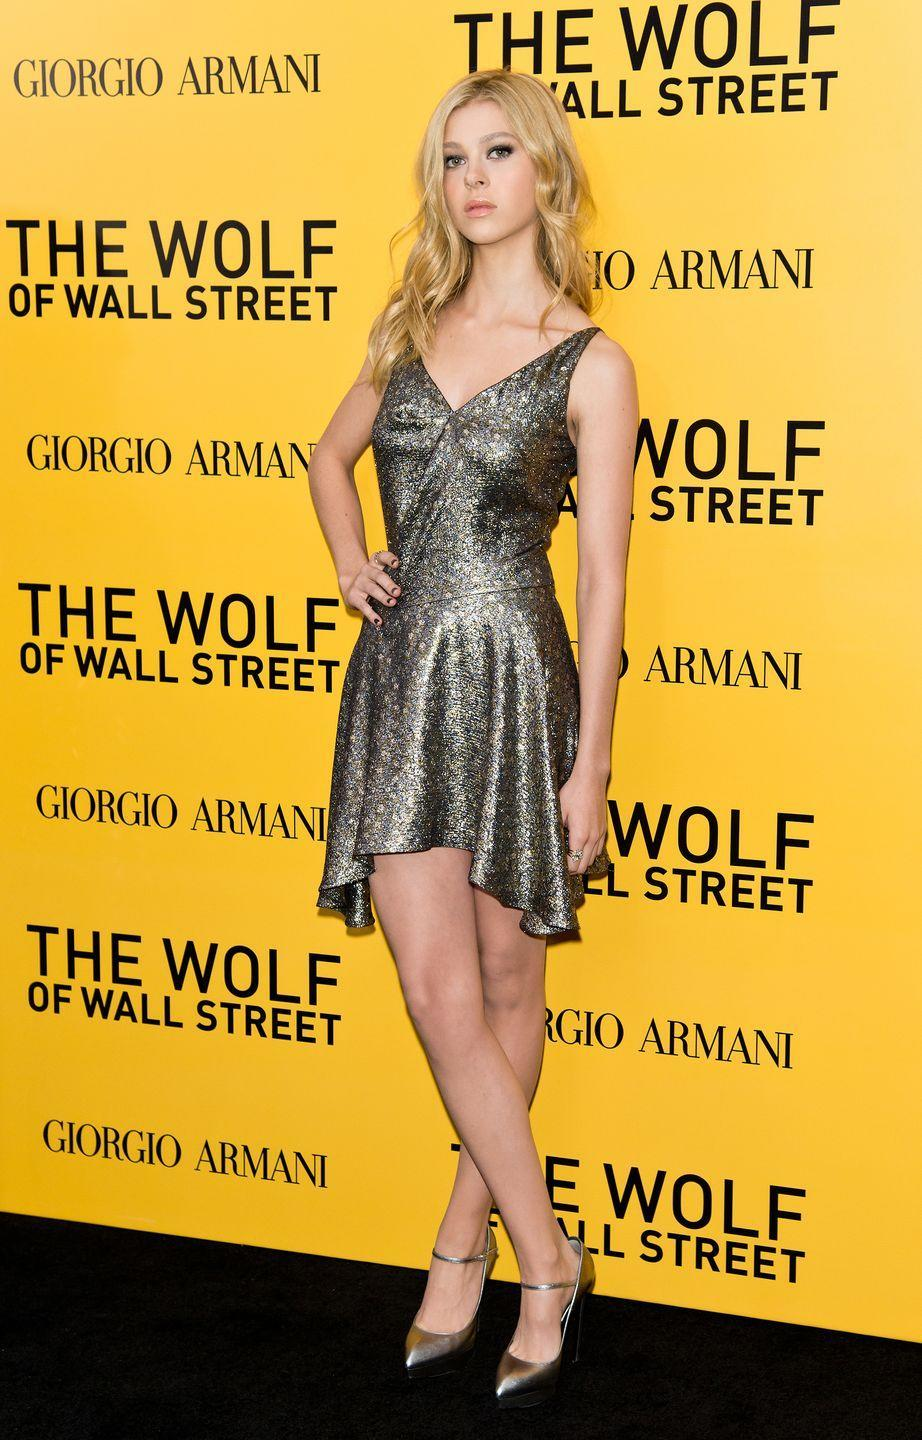 <p>Peltz decided to wear a gold lamé-effect mini dress with a V-neck cut at the bust, teamed with a pair of pointed-toe gold heels to the A-list premiere.</p>